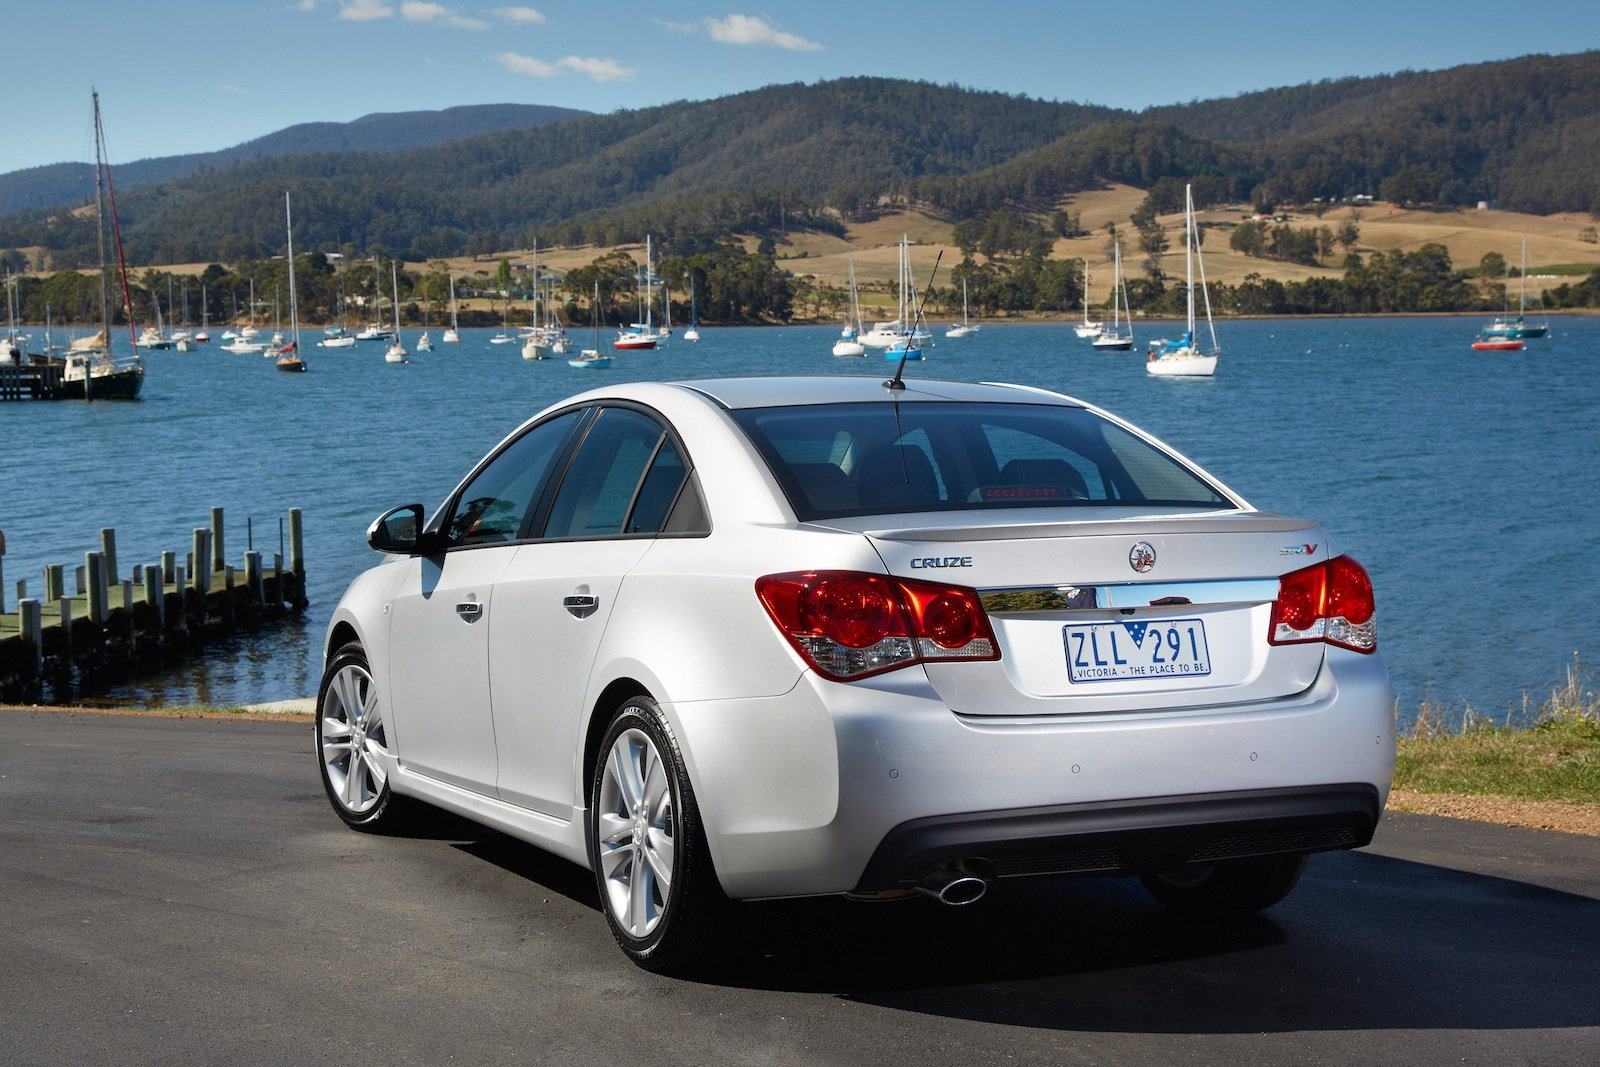 holden cruze 1.6 turbo review